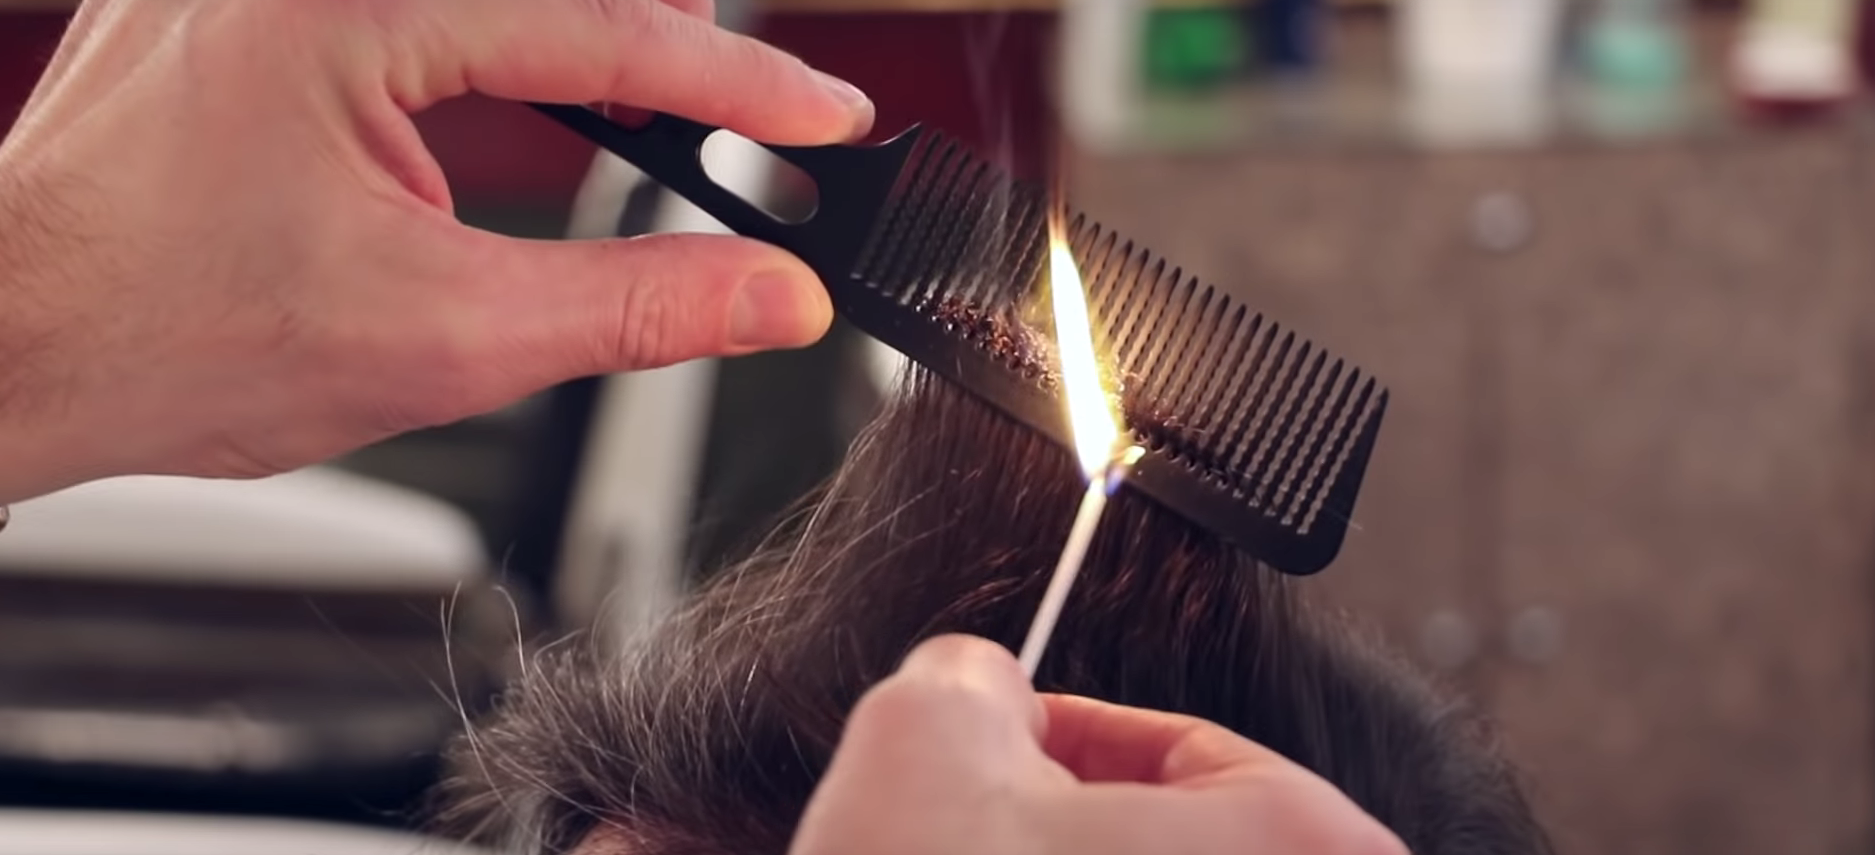 Feeling Hot! Cutting Hair With Fire